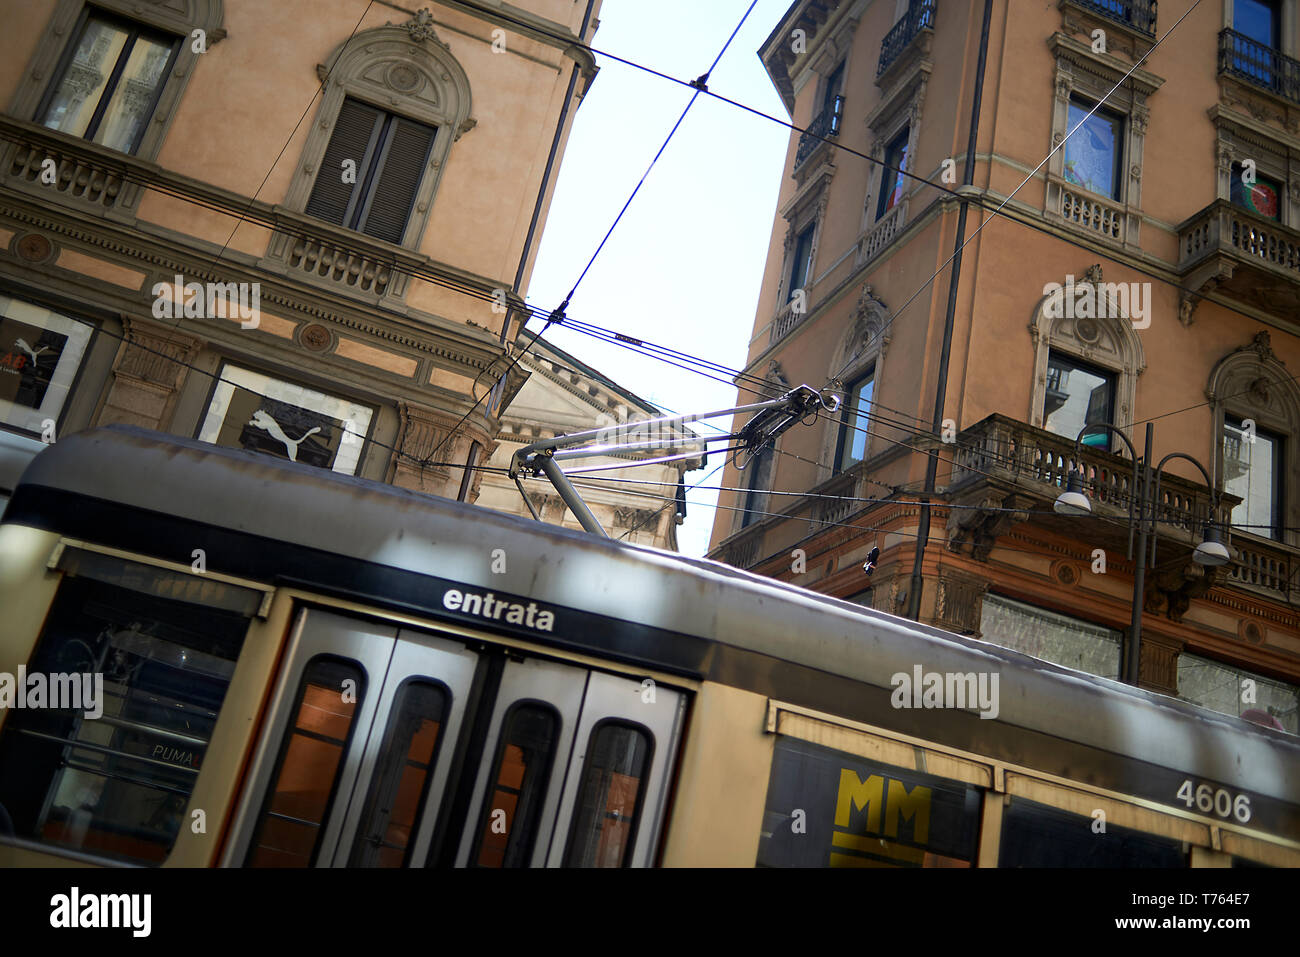 A tram driving through the streets surrounded by buildings in the city centre of Milan in Italy in daylight - Stock Image